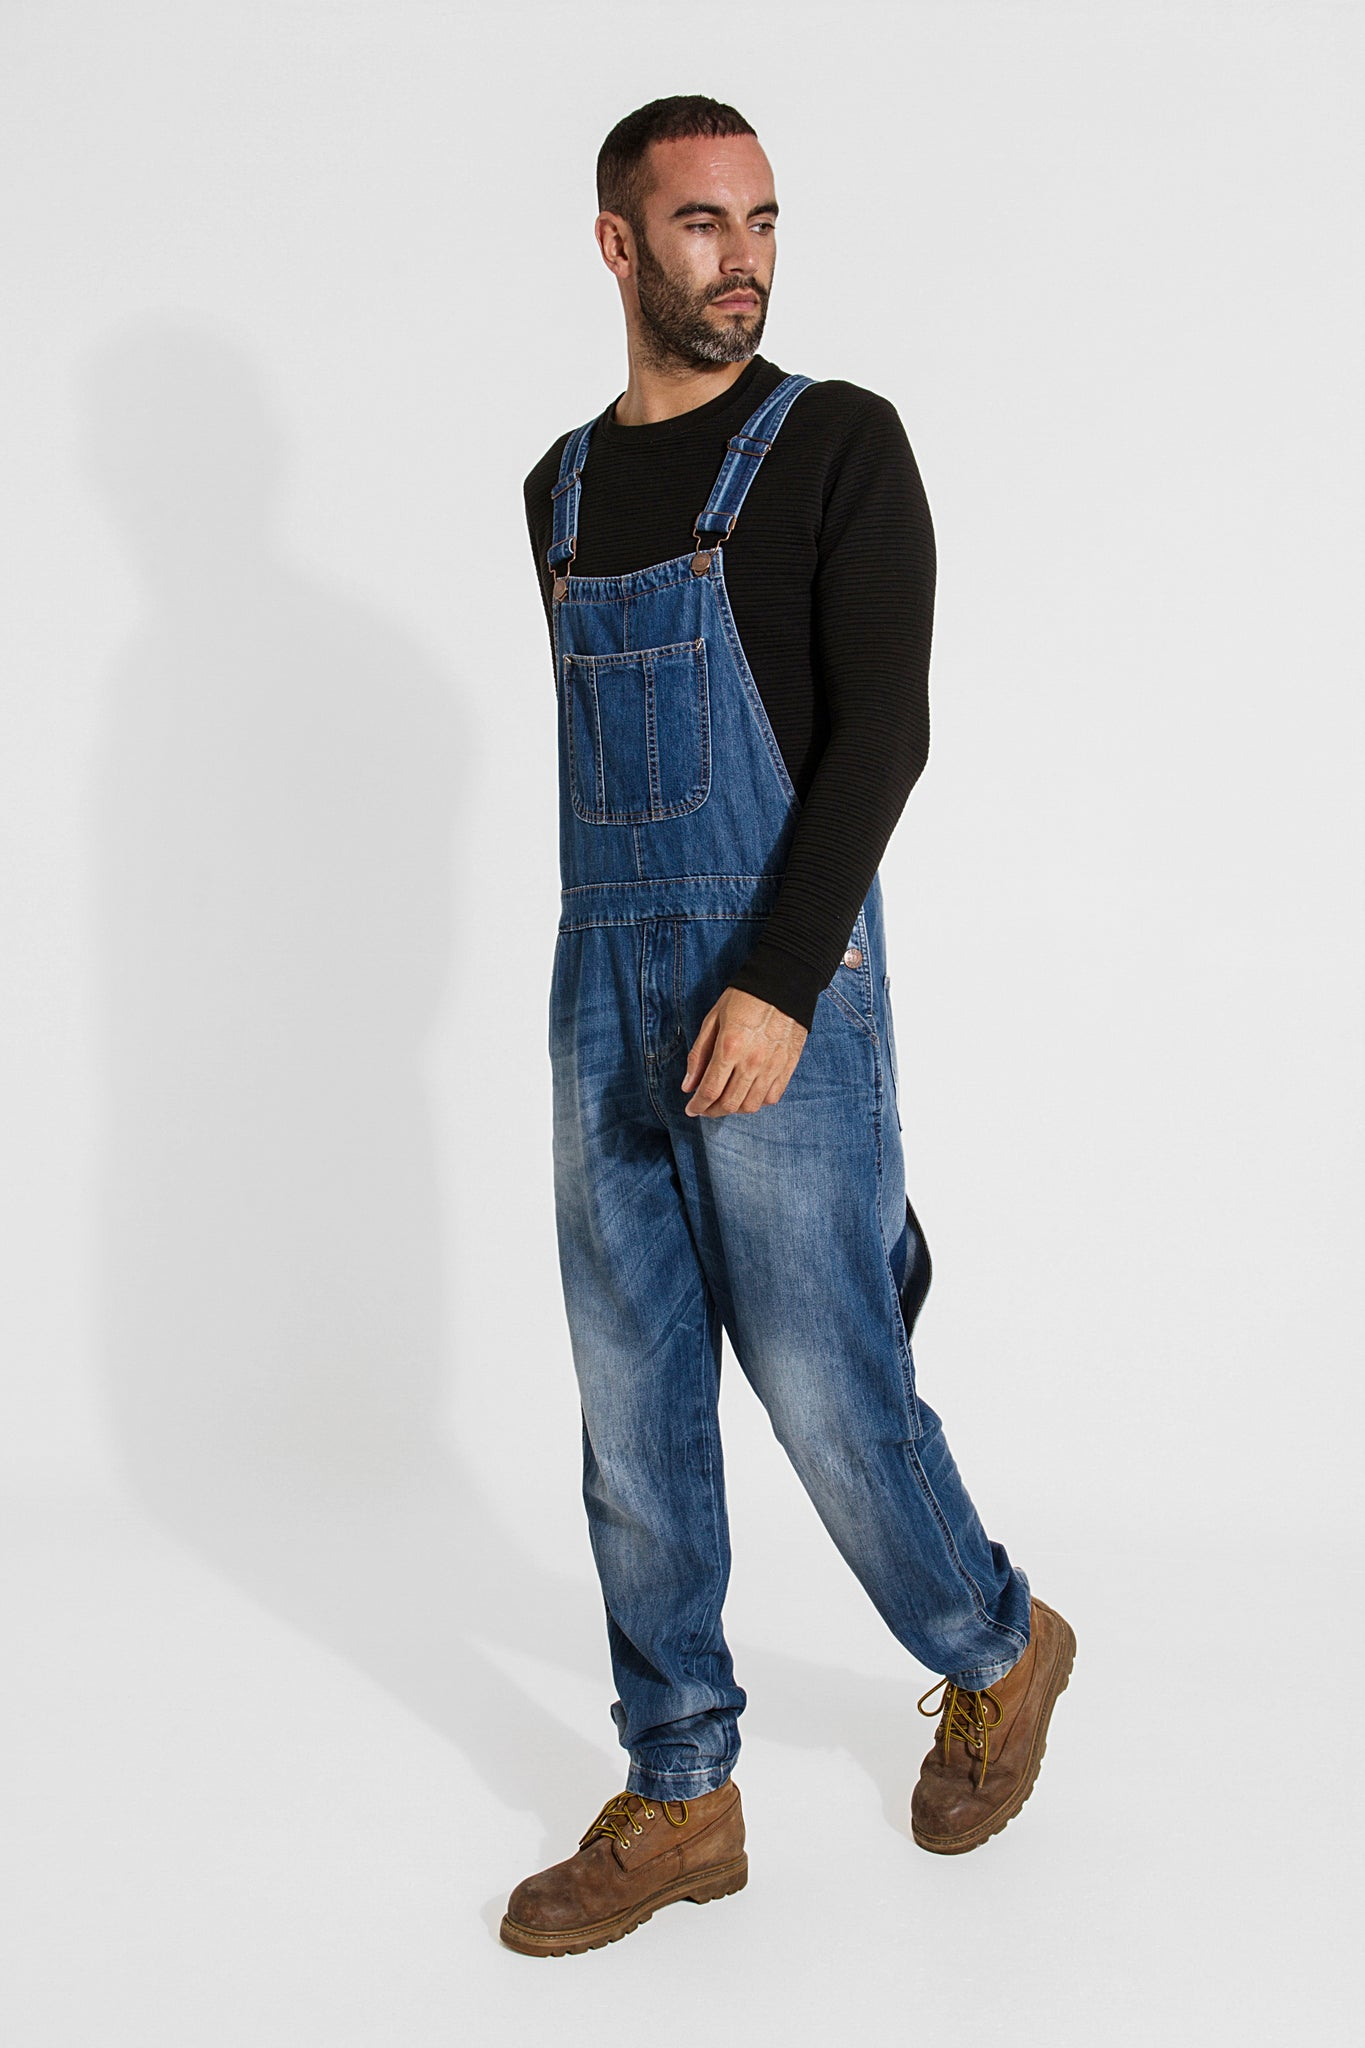 Full frontal-side pose looking to his left and walking, wearing bib-up midwash dungarees from Dungarees Online.